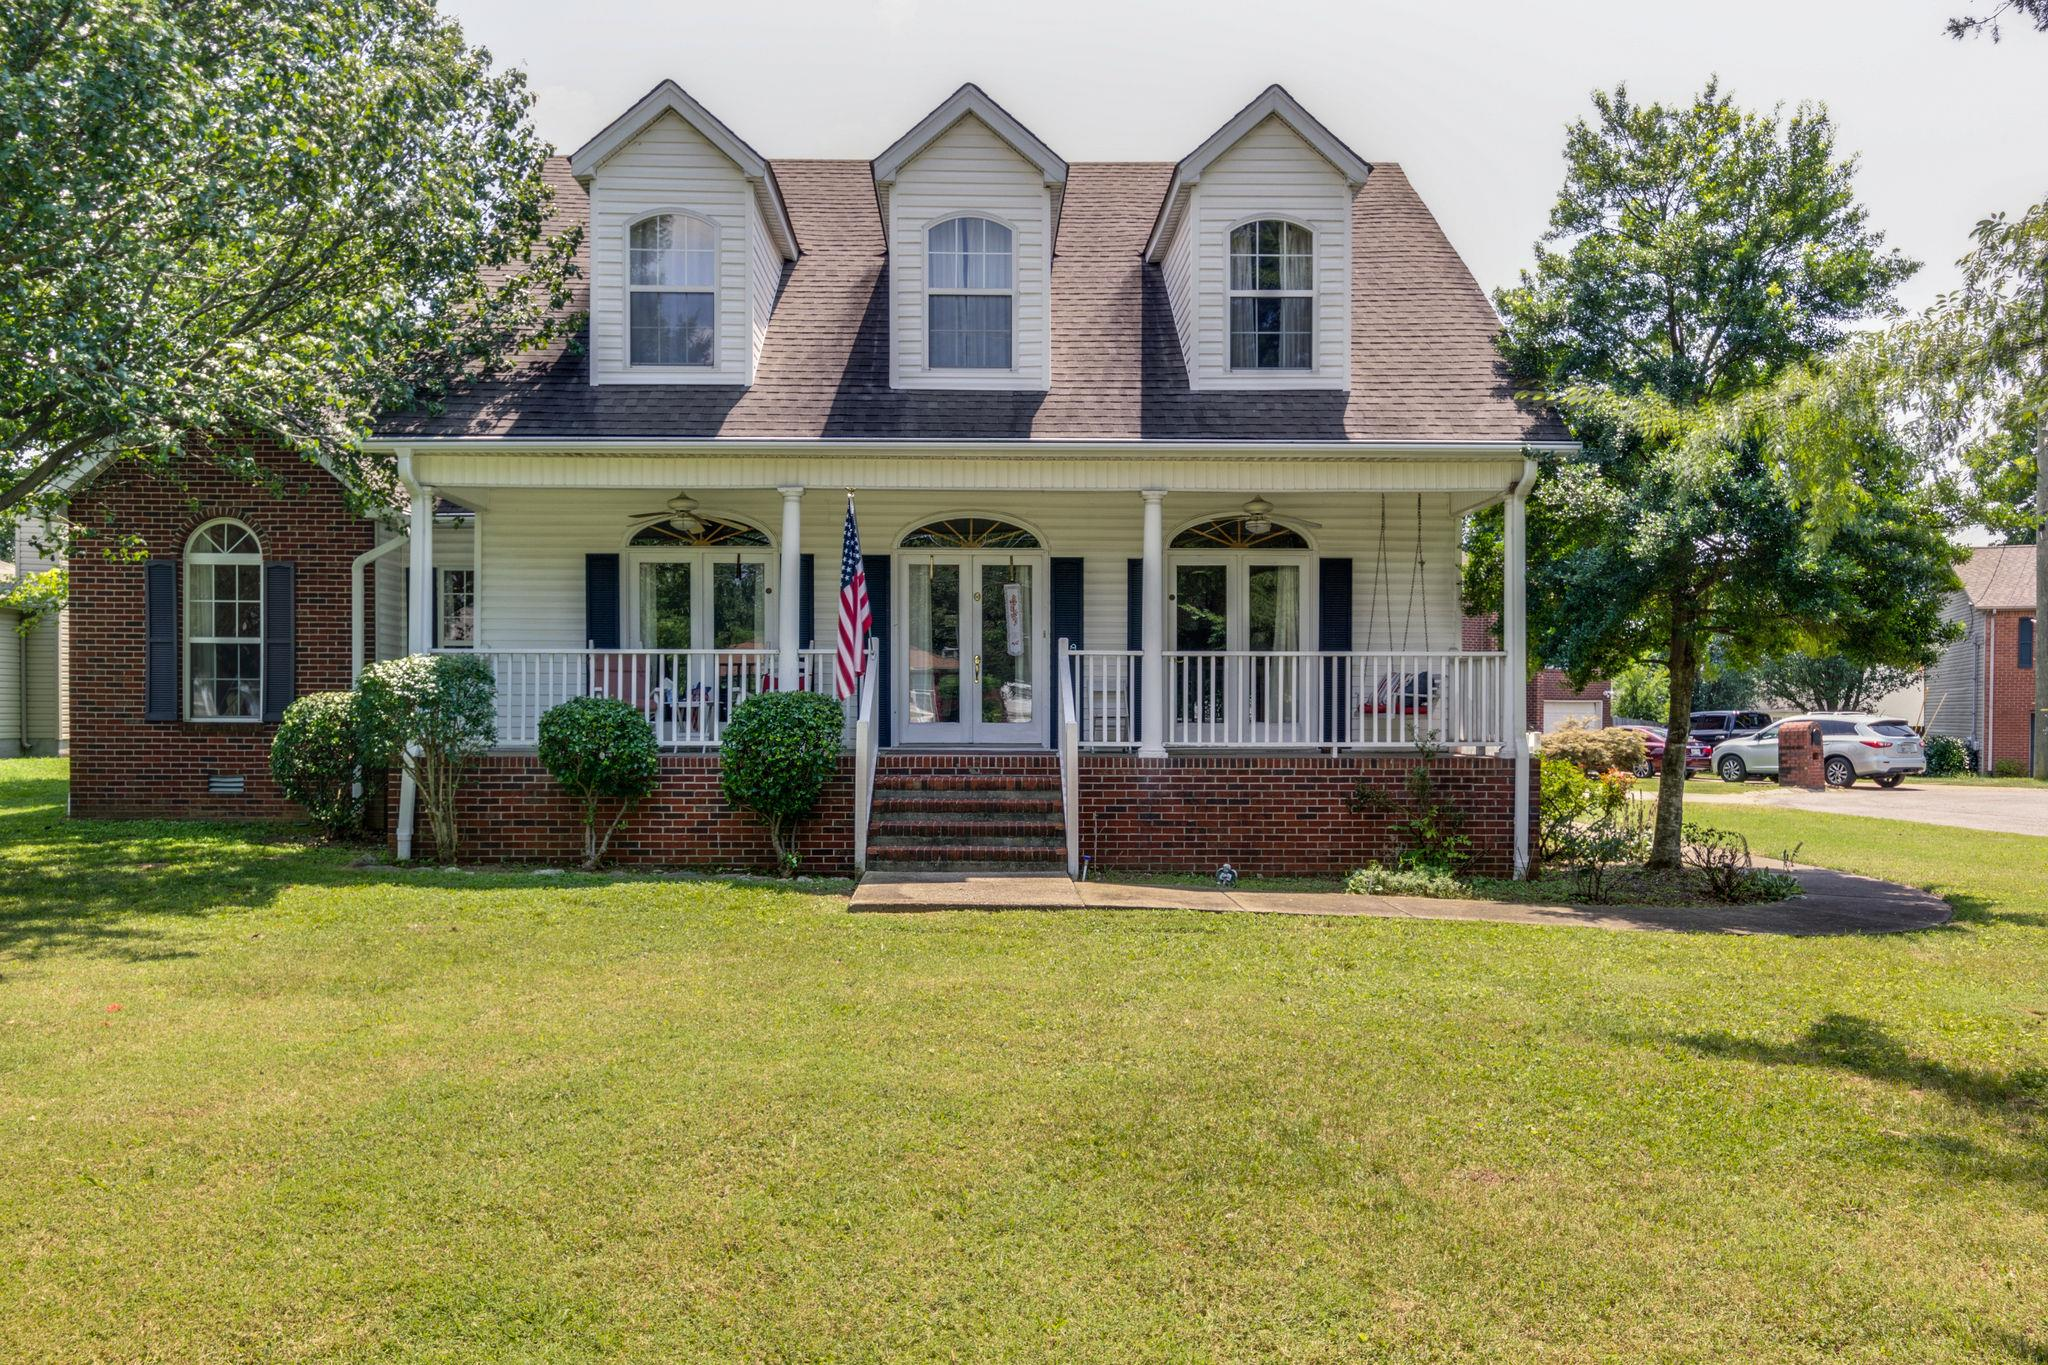 4493 Lavergne Couchville Pk, Nashville-Antioch in Davidson County County, TN 37013 Home for Sale